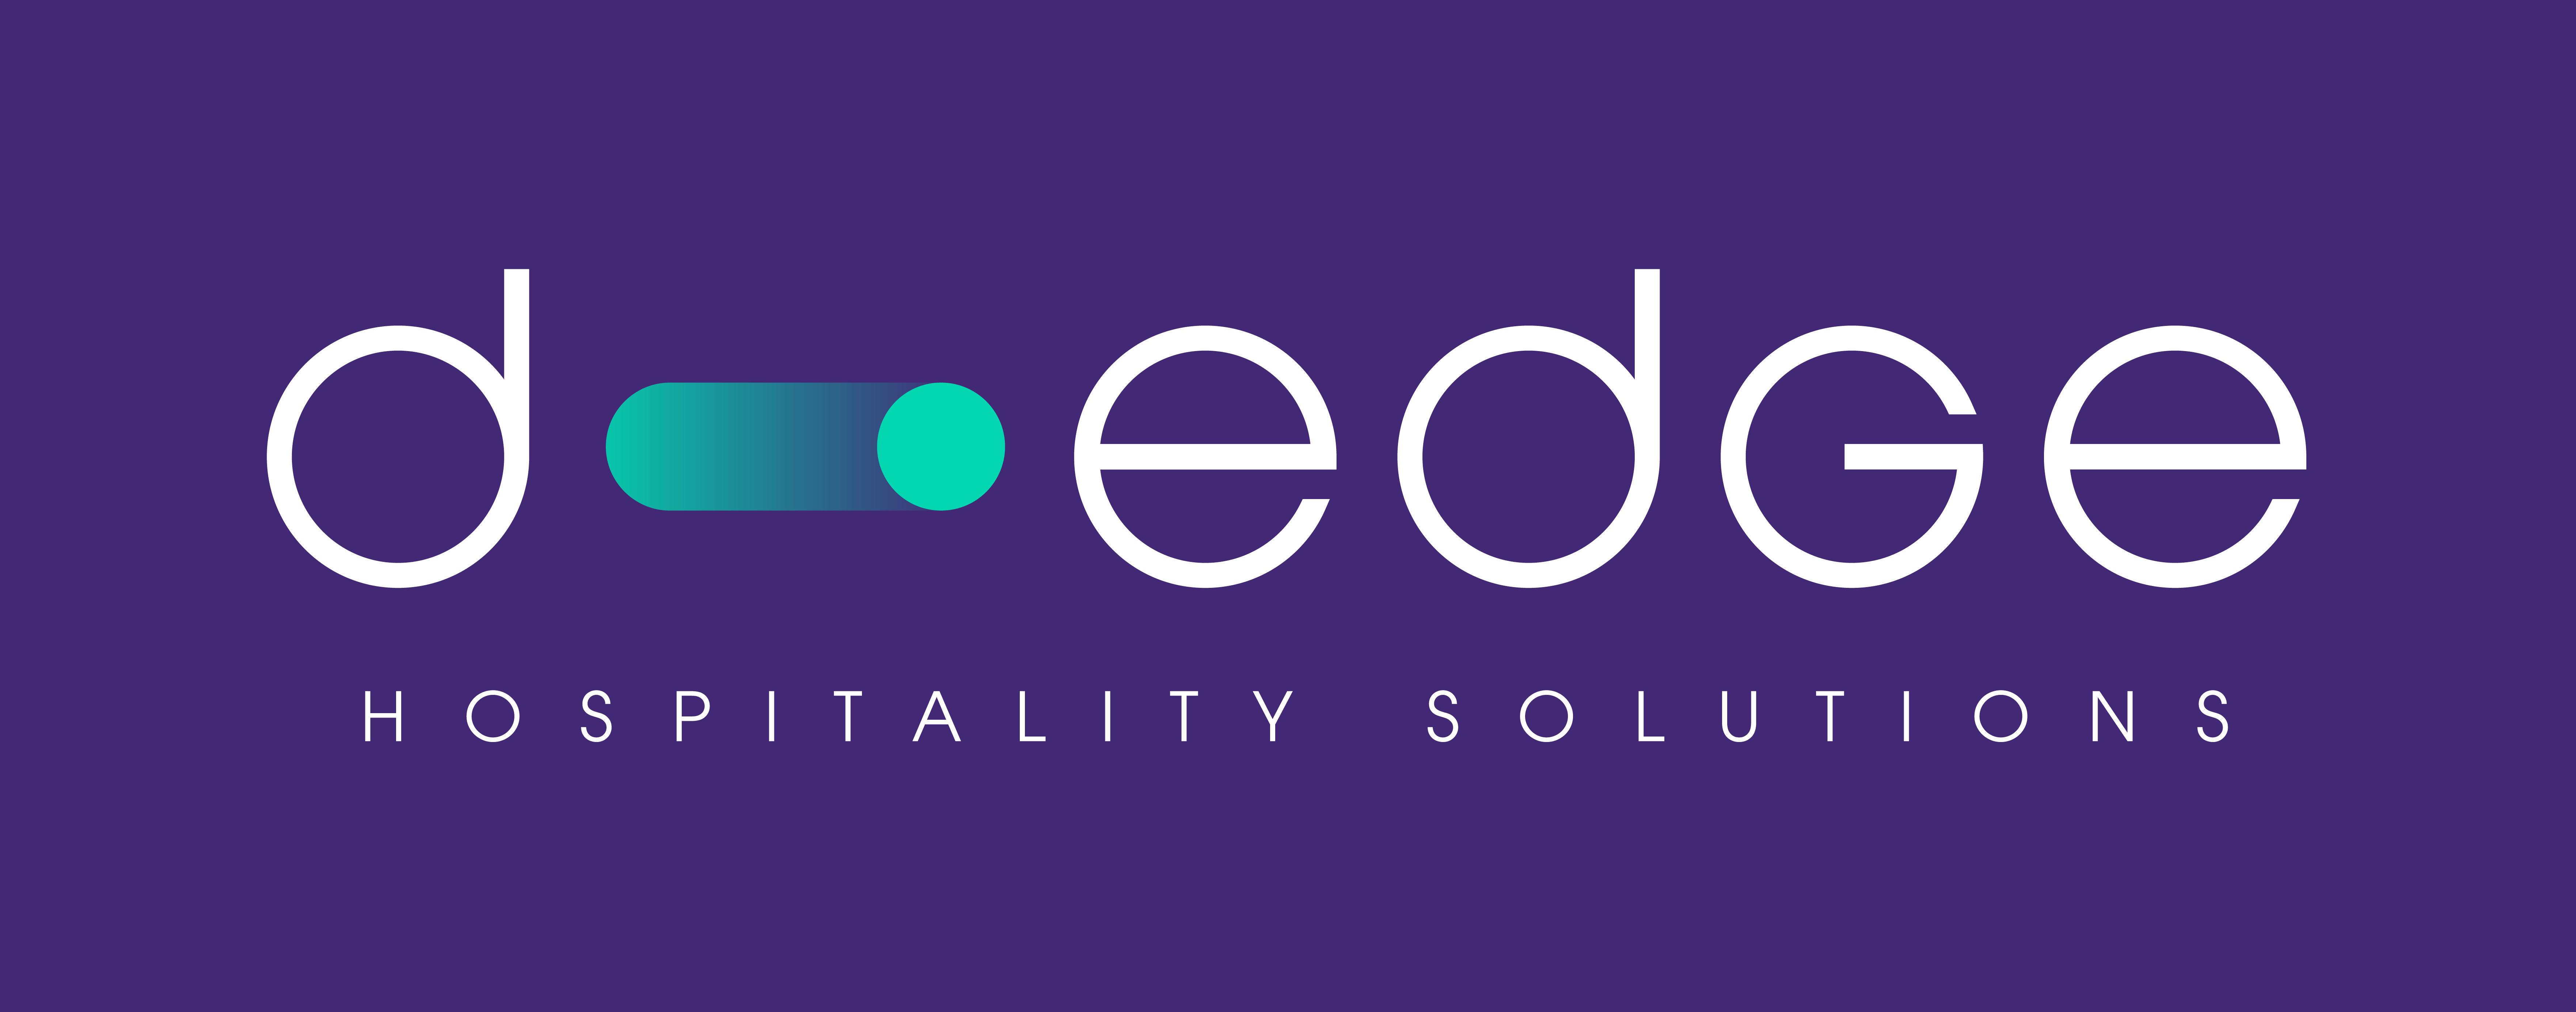 D-EDGE Hospitality Solutions